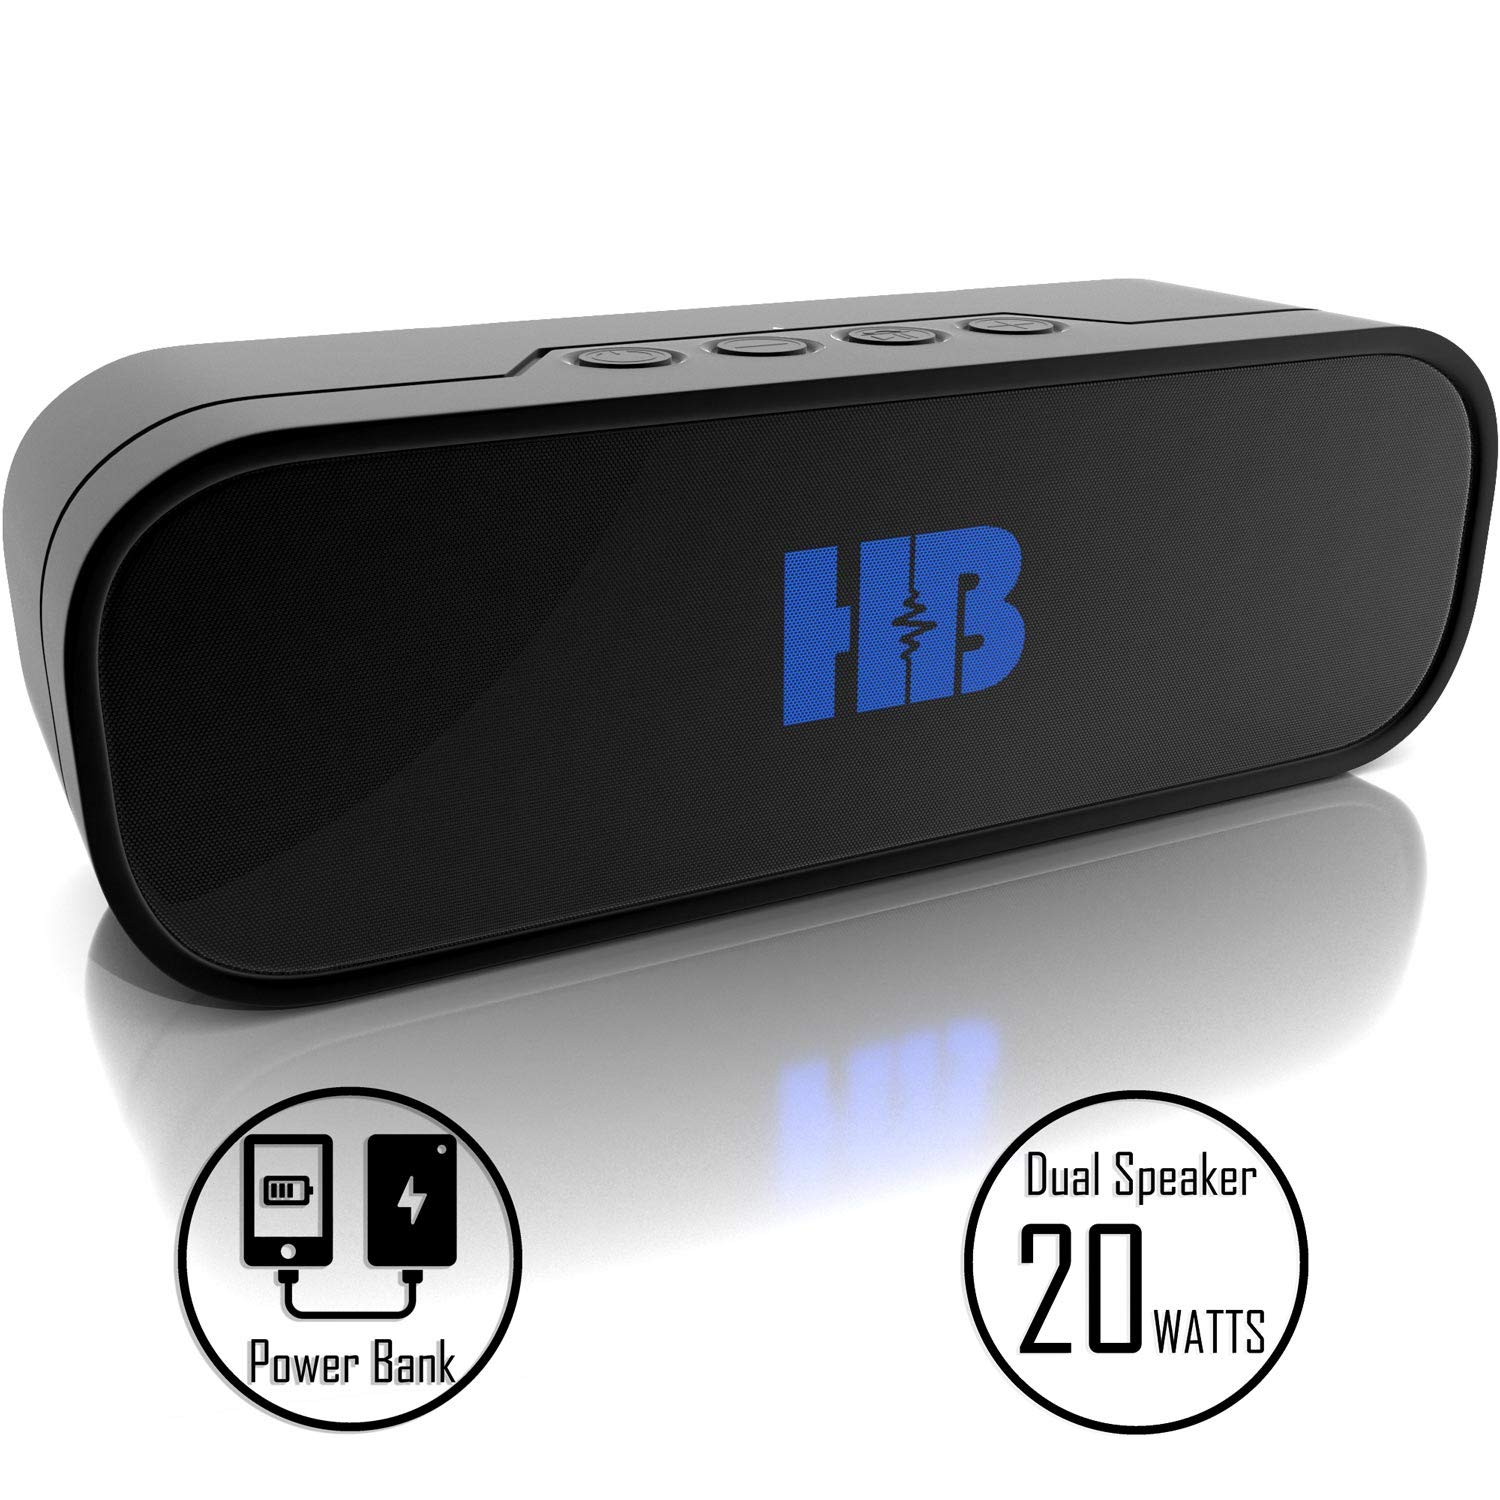 Bluetooth Speaker Power Bank - HB Beast - Powerful 20W Waterproof Bluetooth Portable Shower Speaker with Power Bank. Multiple Connections, Bluetooth, Micro SD Card Slot, USB Charging and Aux Cable. by Hydro Beat